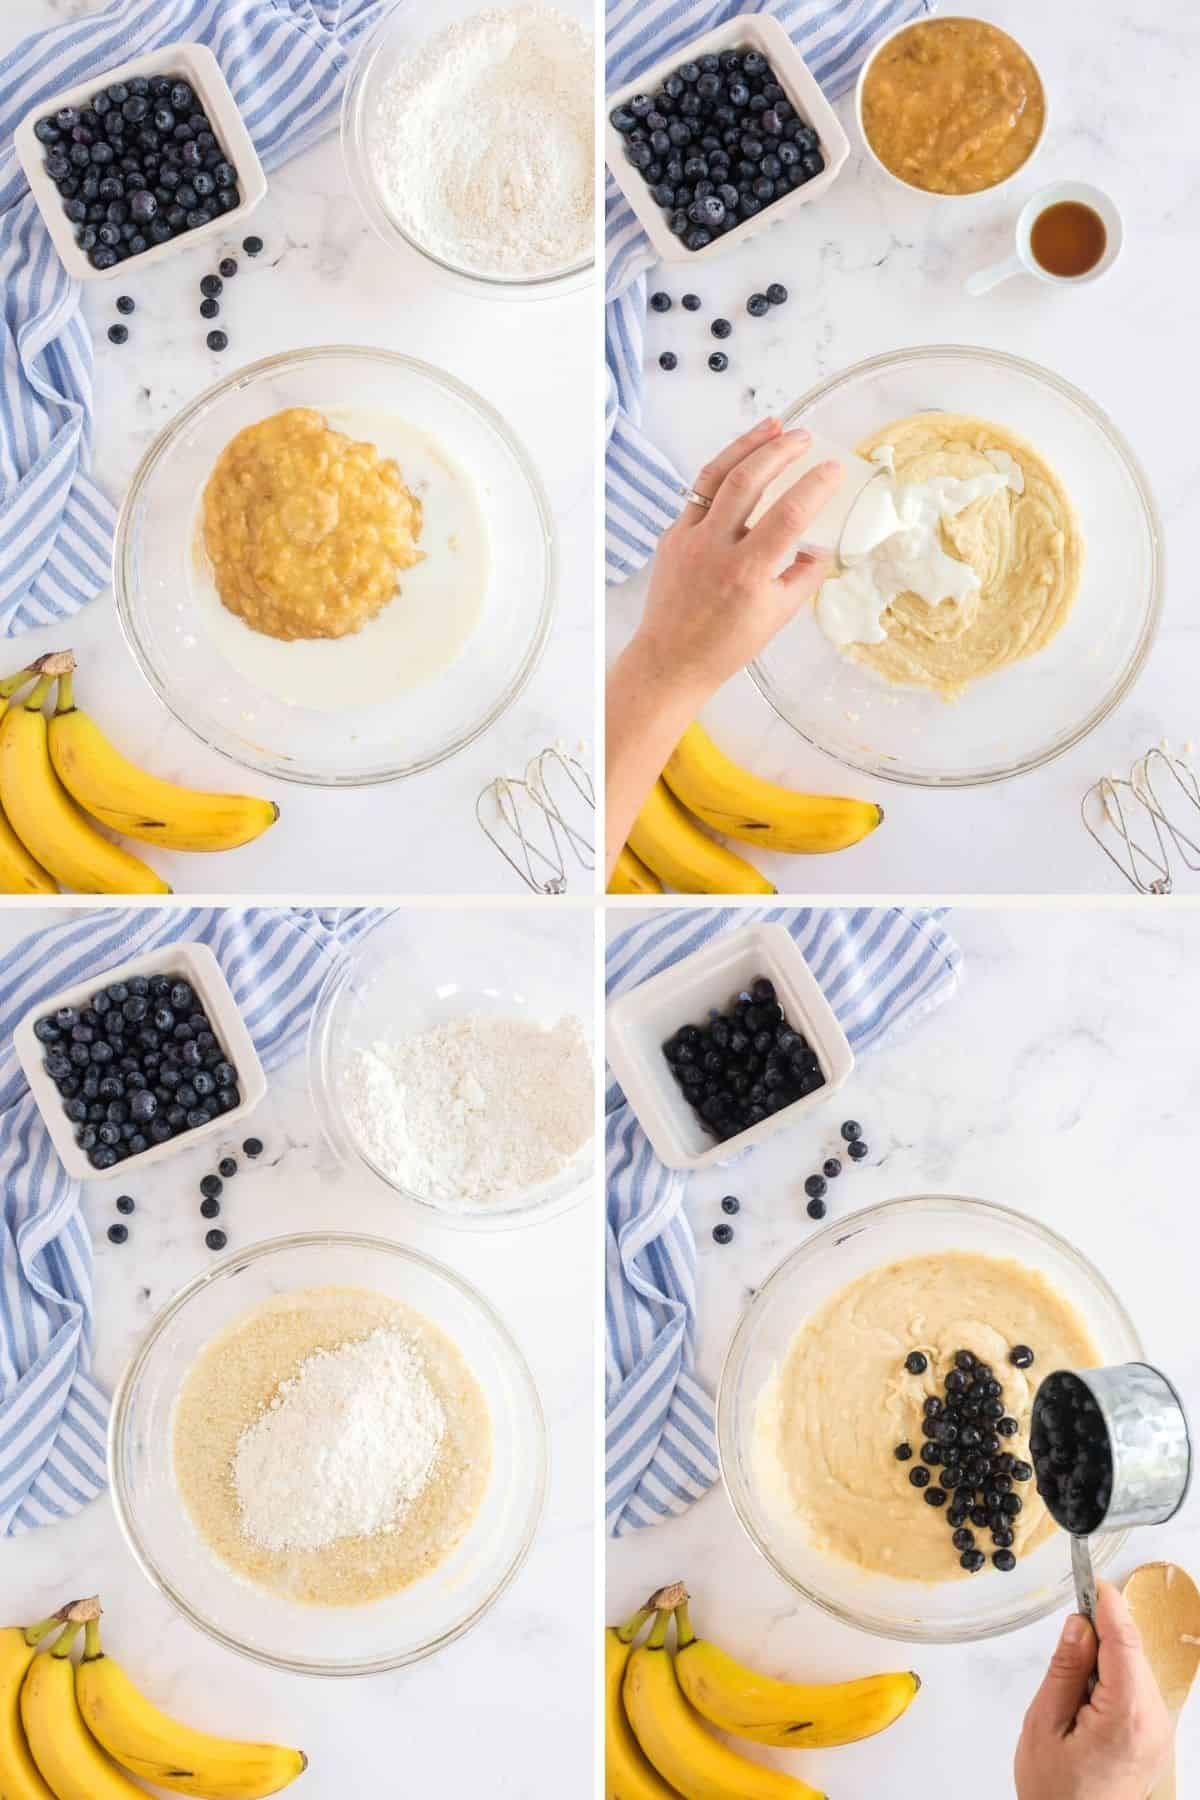 step by step photos showing blueberry bread batter being made